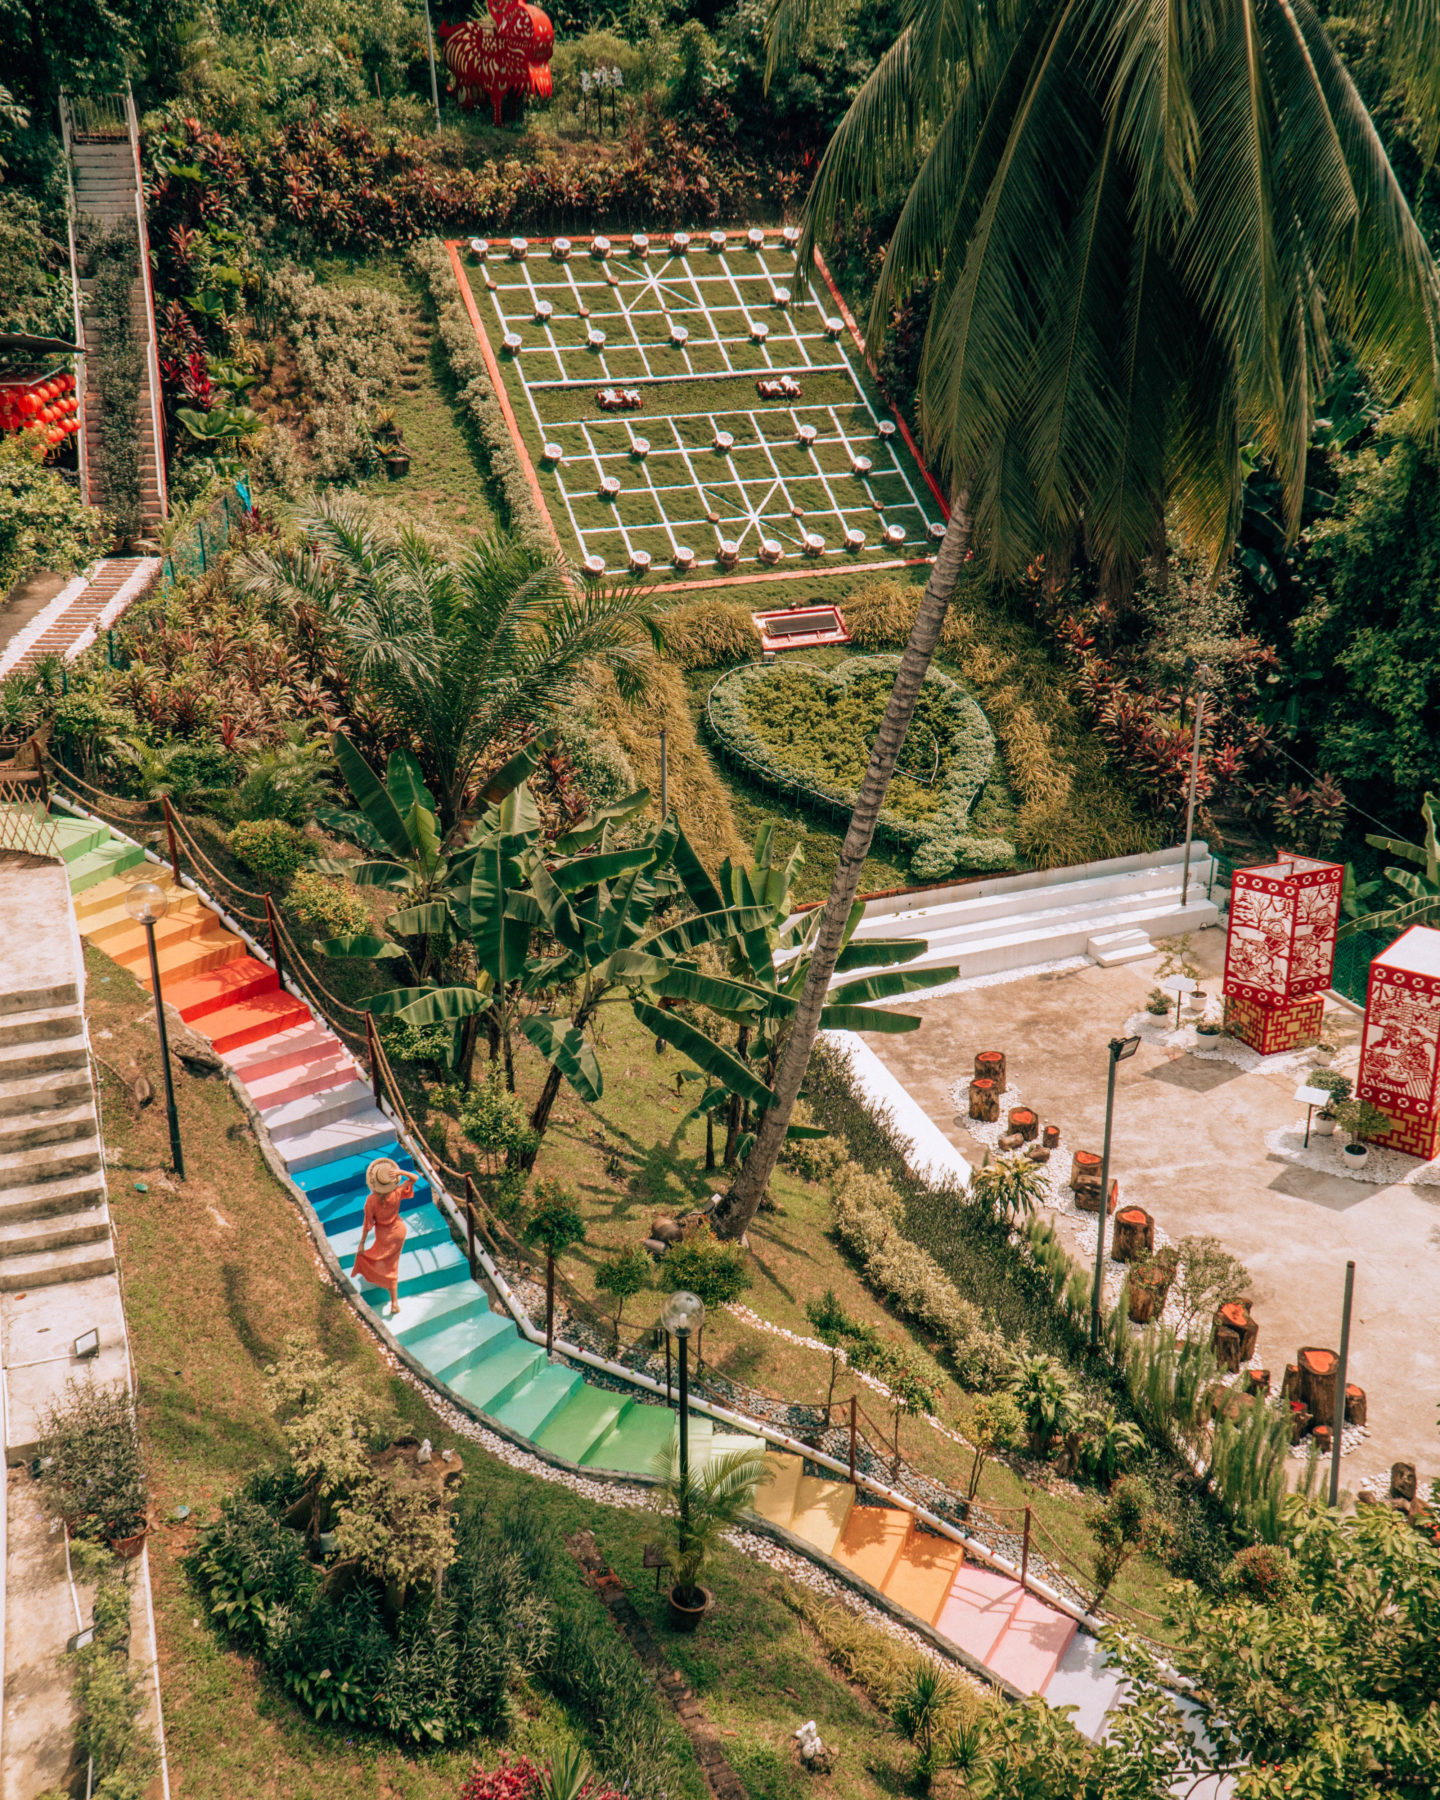 Colorful stairs at Thean Hou Temple in Kuala Lumpur